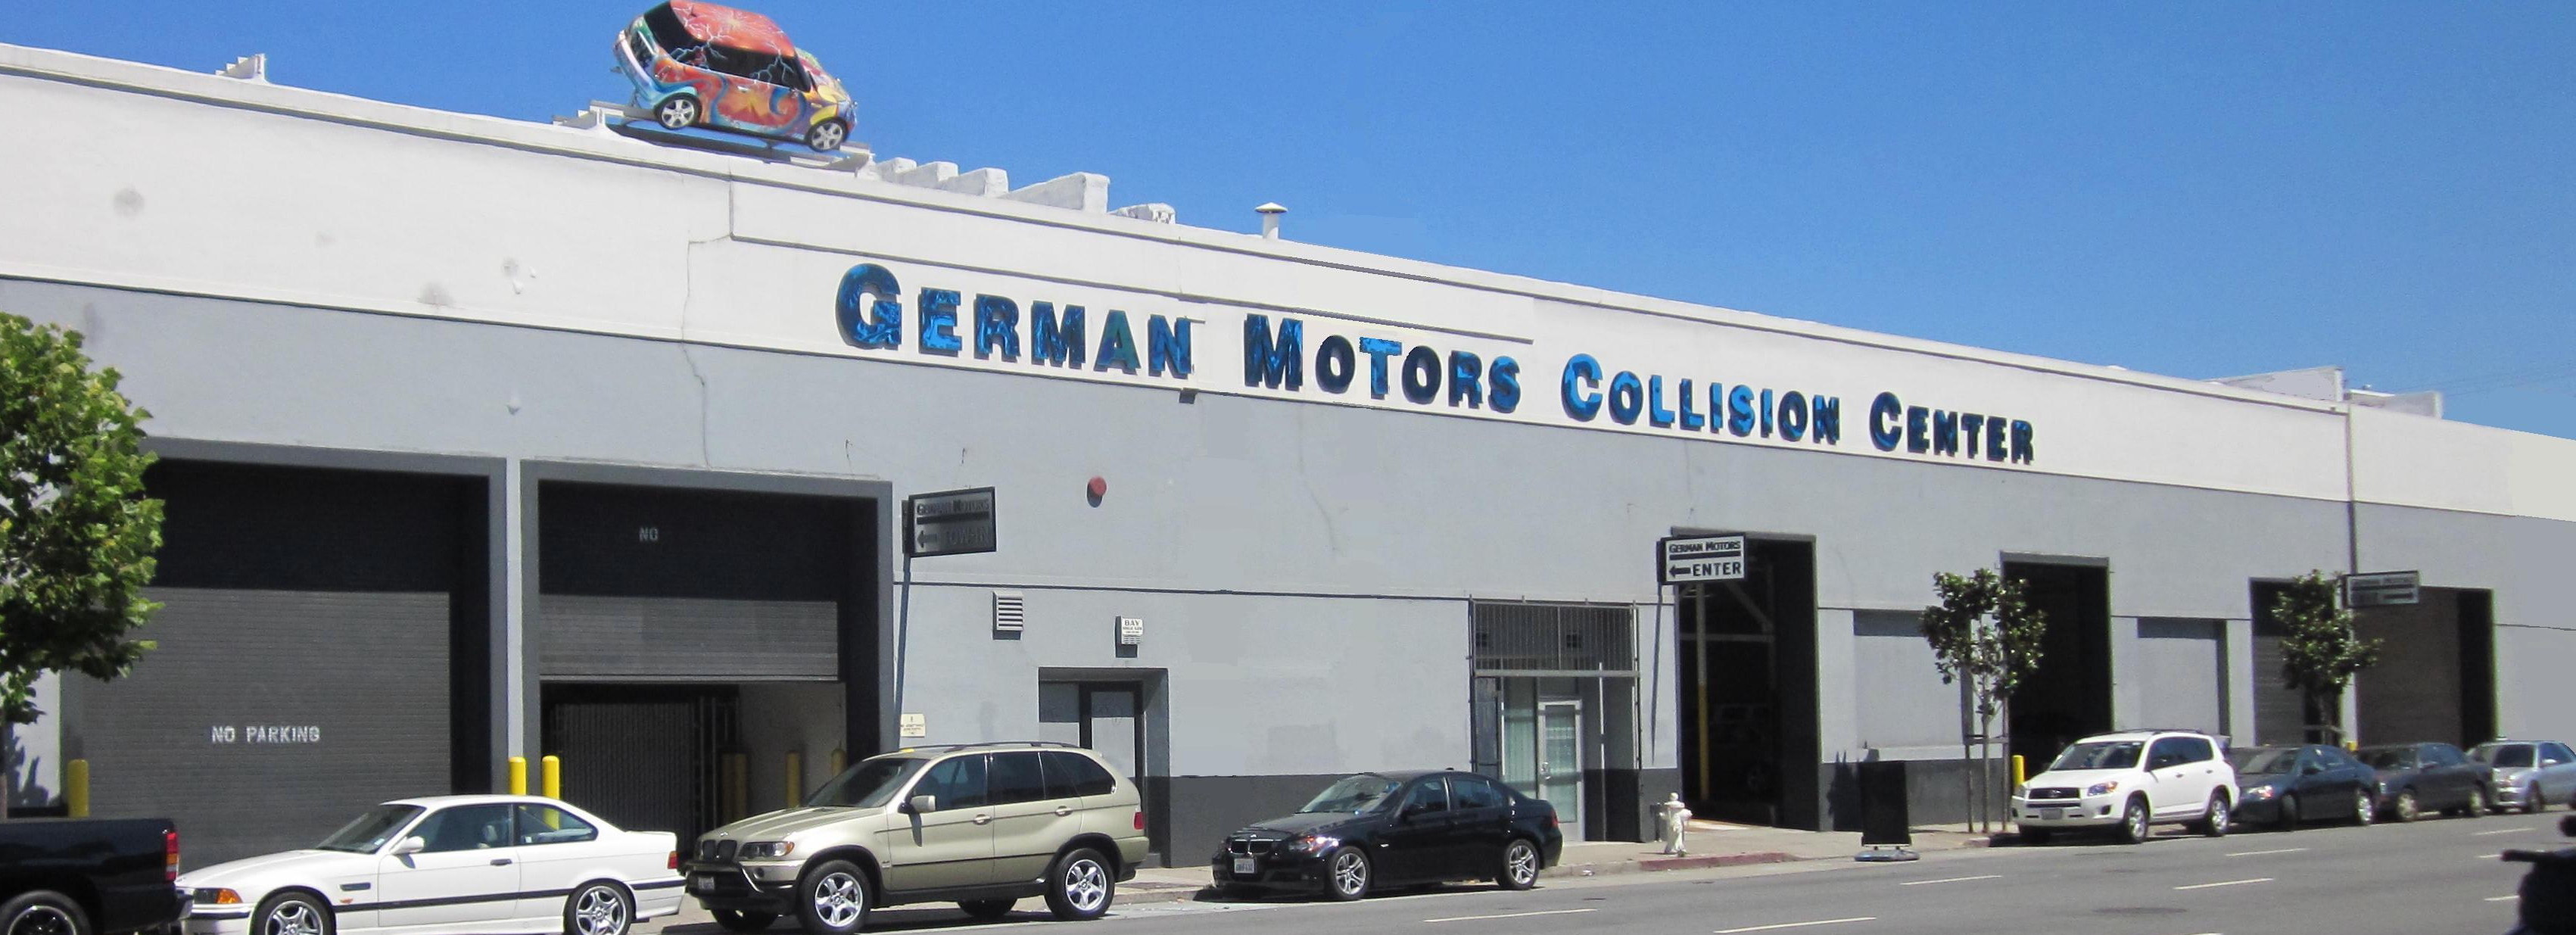 directions german motors collision center